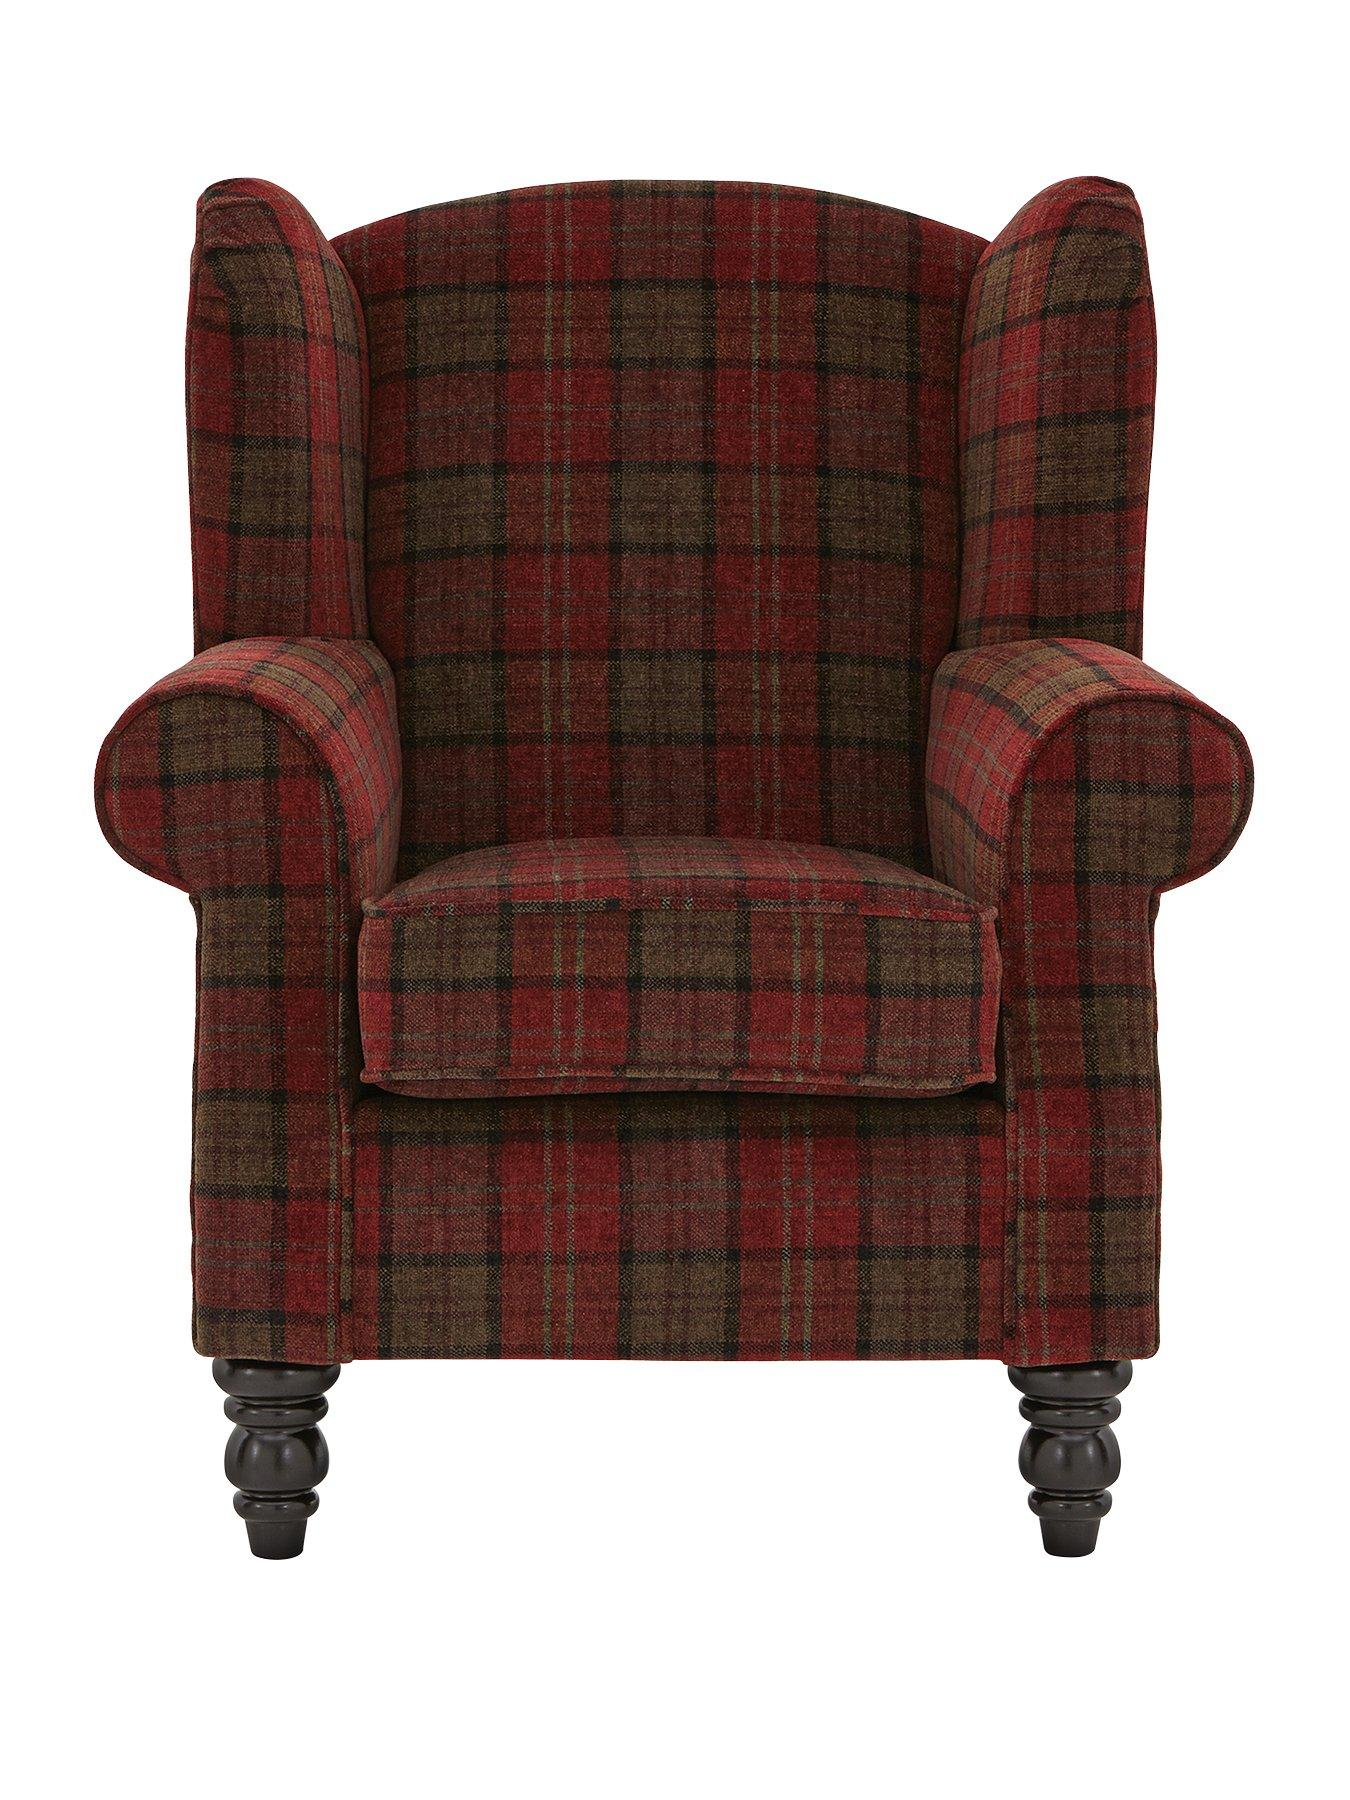 Orkney Tartan Patterned Accent Wing Chair